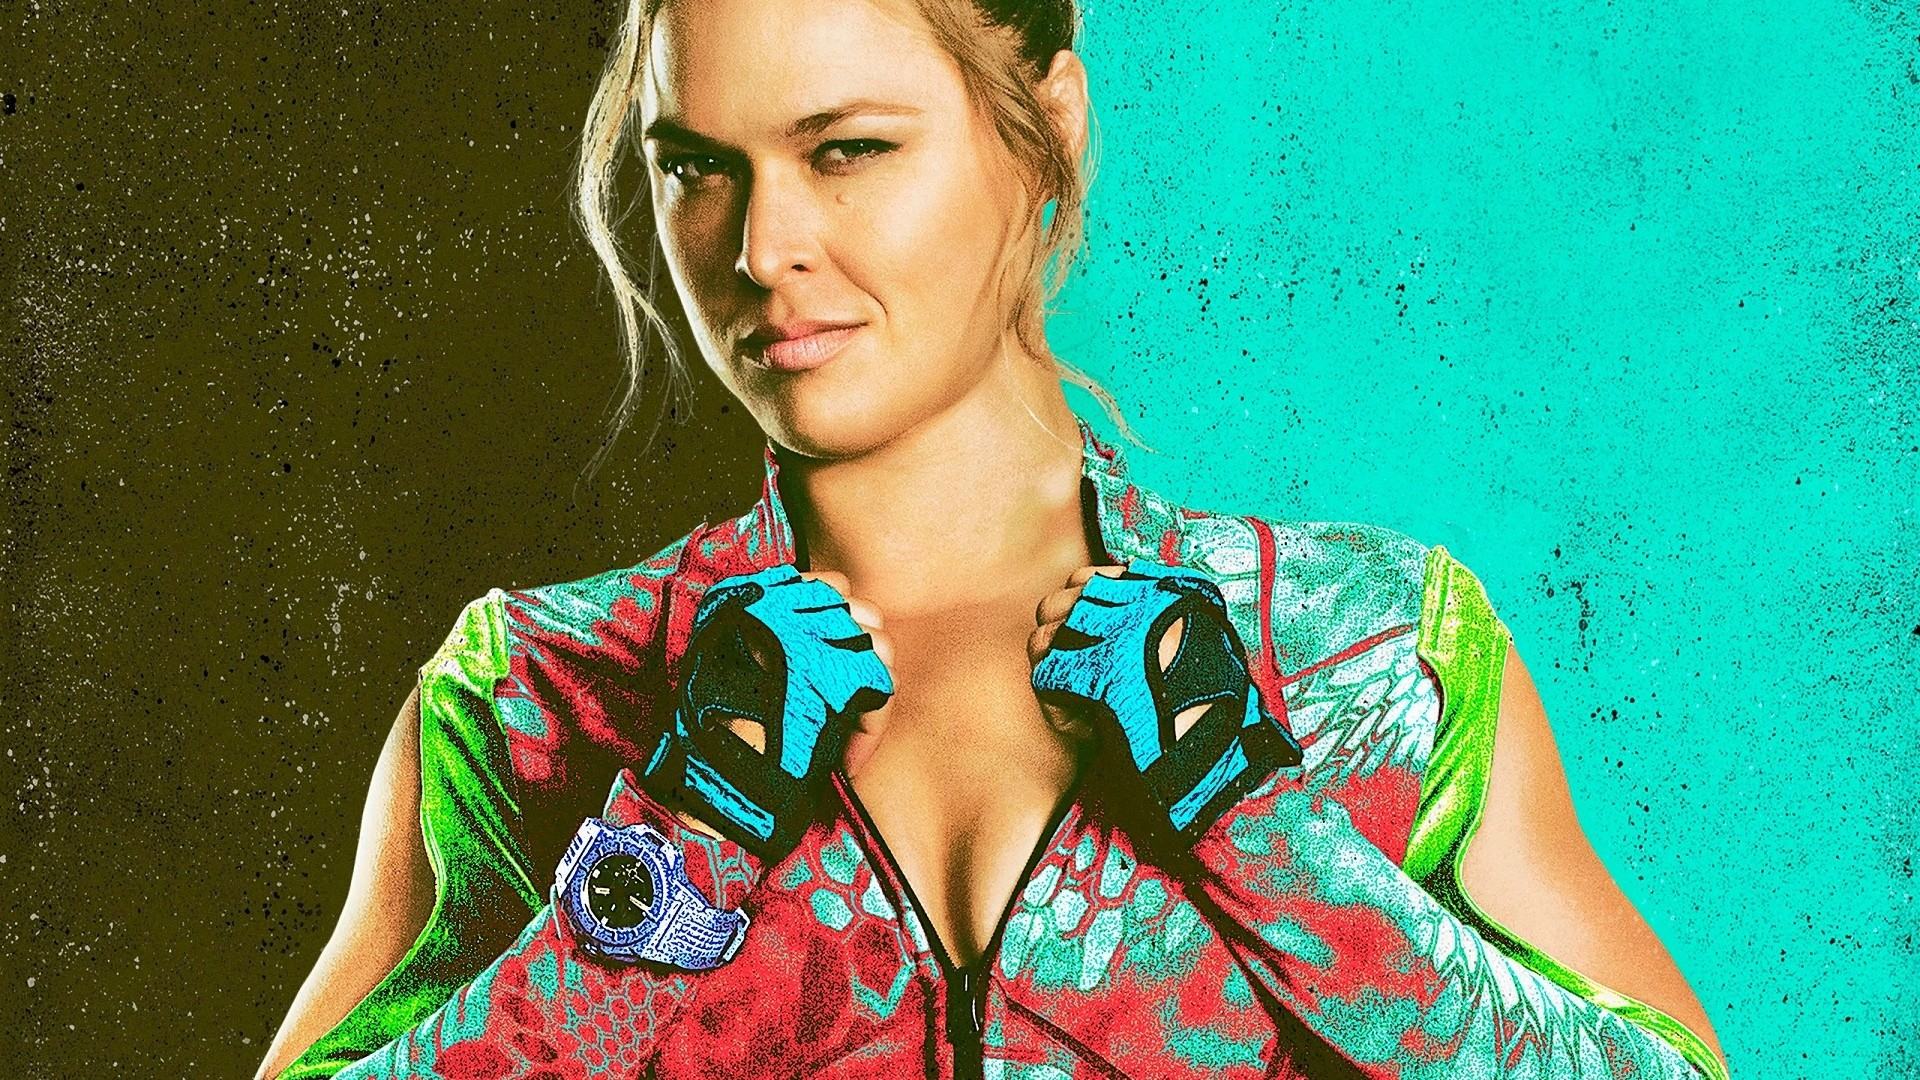 Ronda rousey wallpapers 65 images - Ronda rousey wallpaper ...